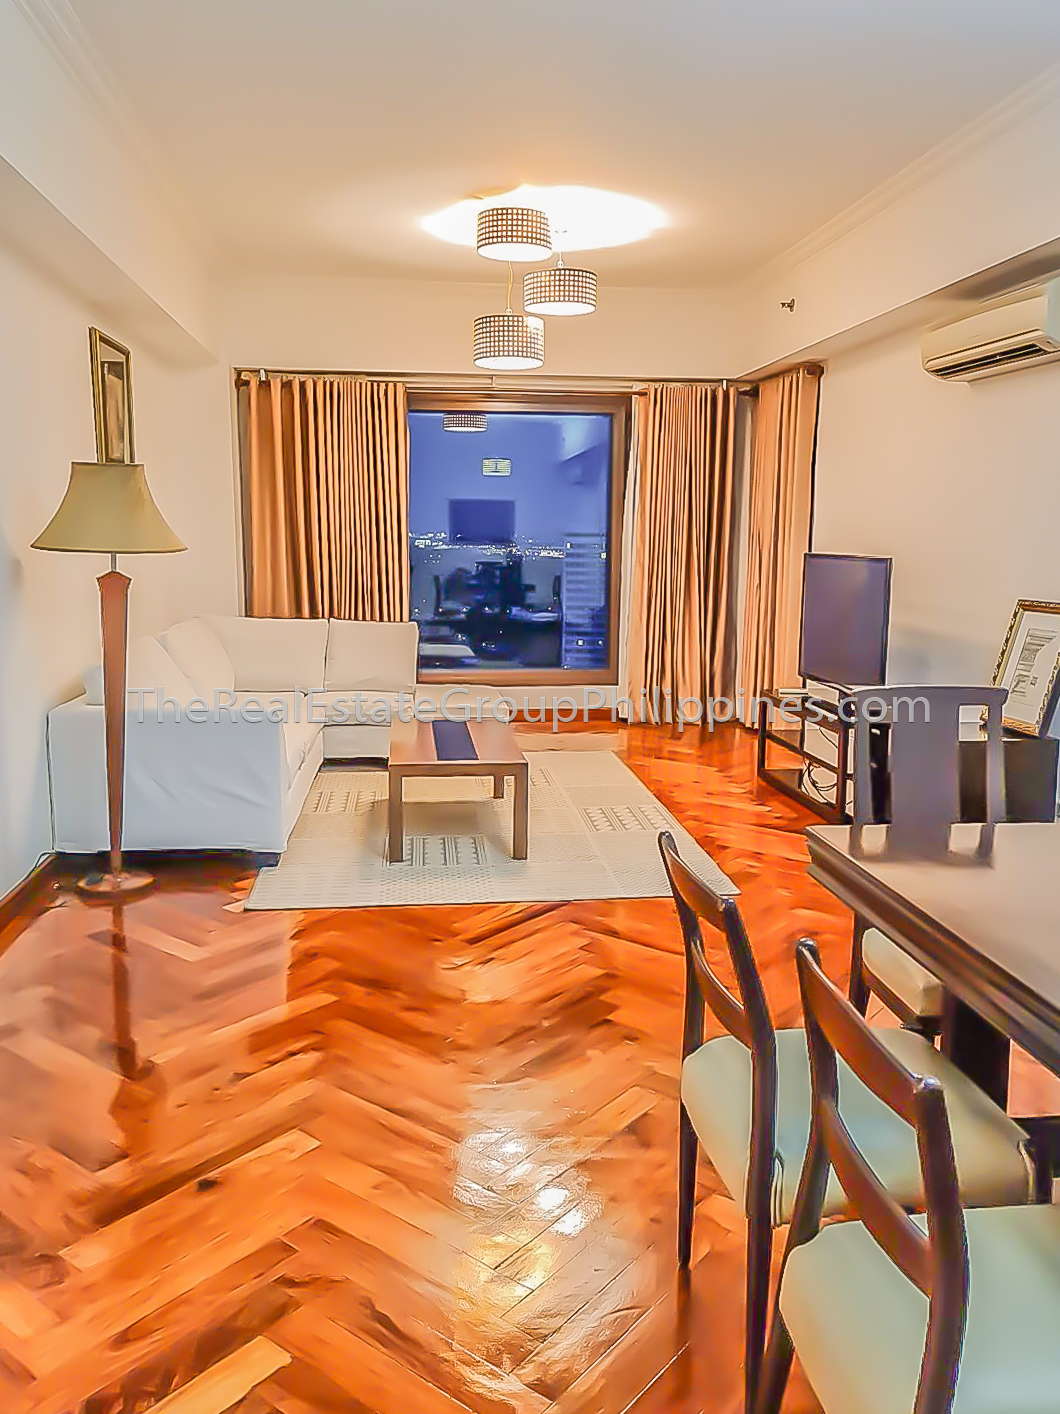 2BR Condo For Rent, The Shang Grand Tower, Legaspi Village, Makati-4